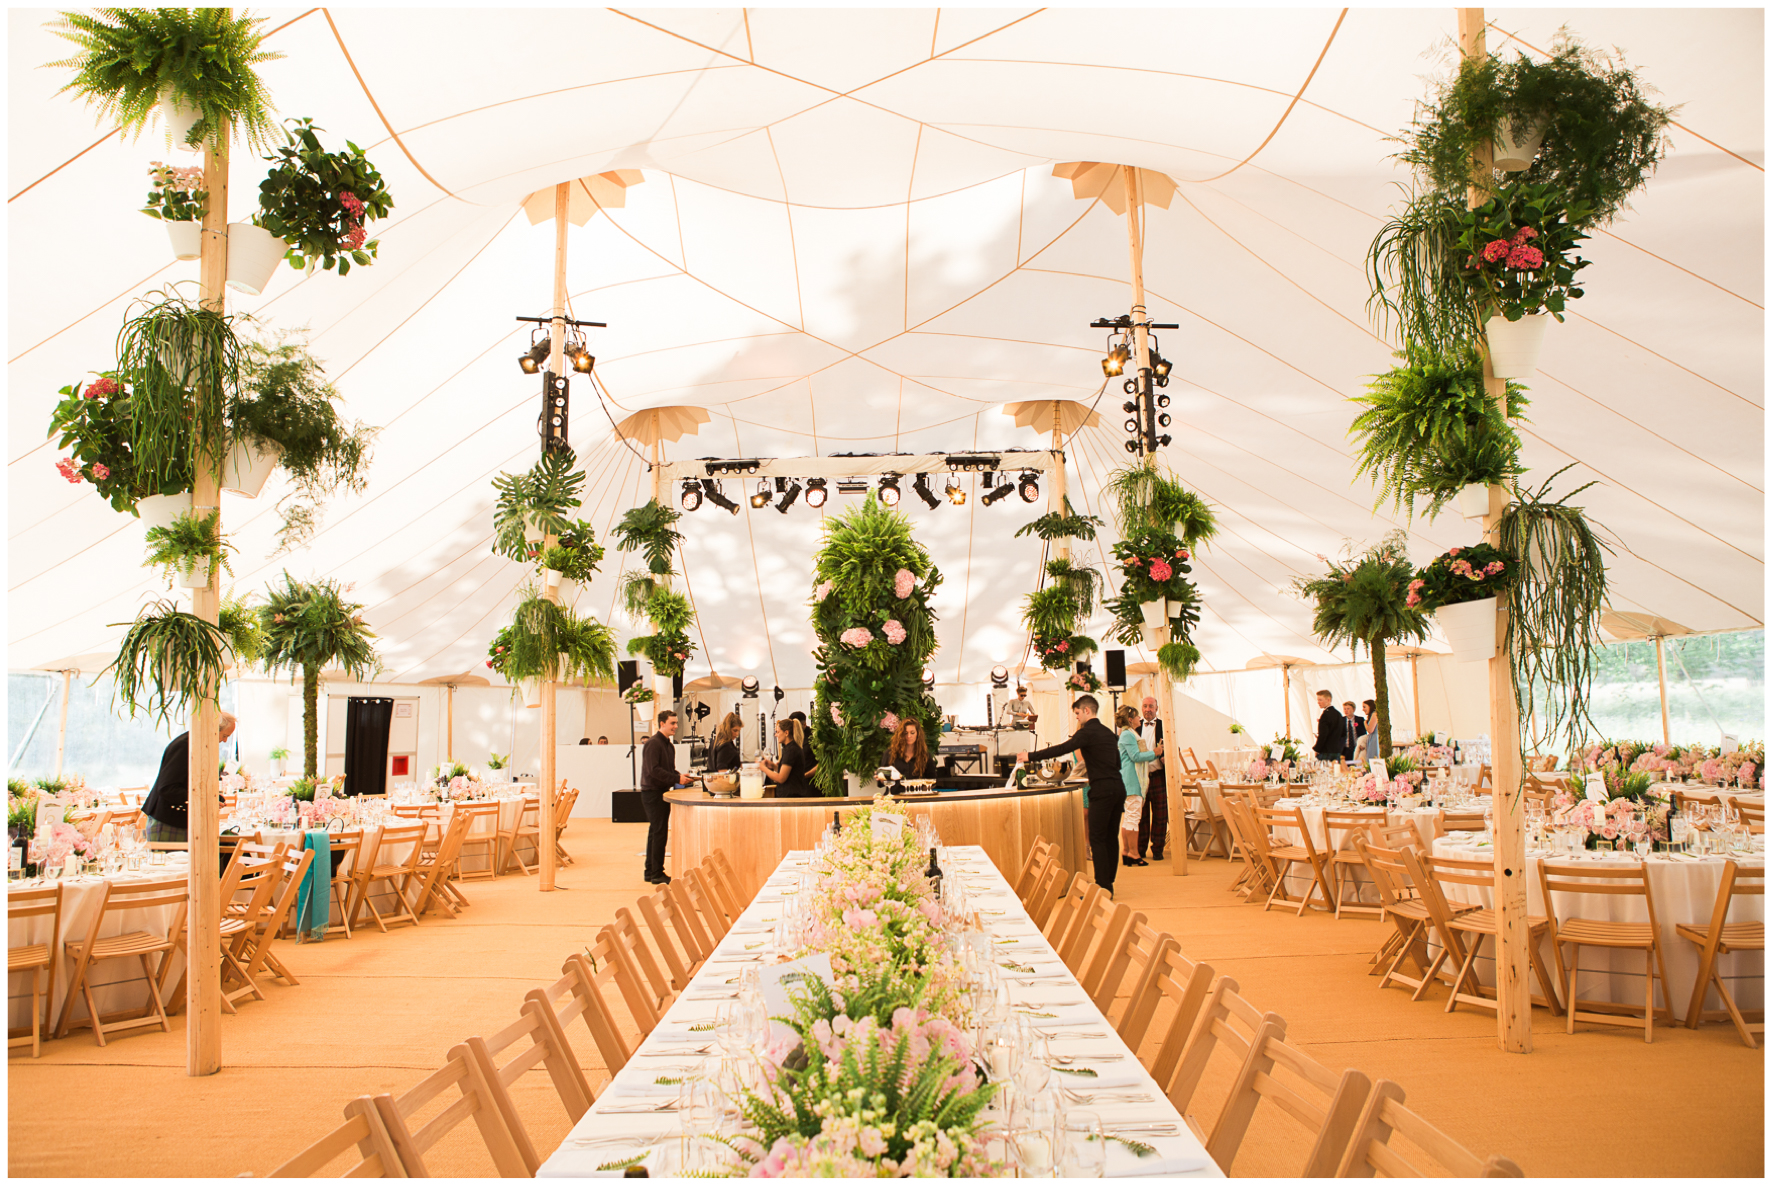 glamping wedding, Lucy Davenport Photography, home wedding, Sperry tent, PapaKata, ferns, greenery